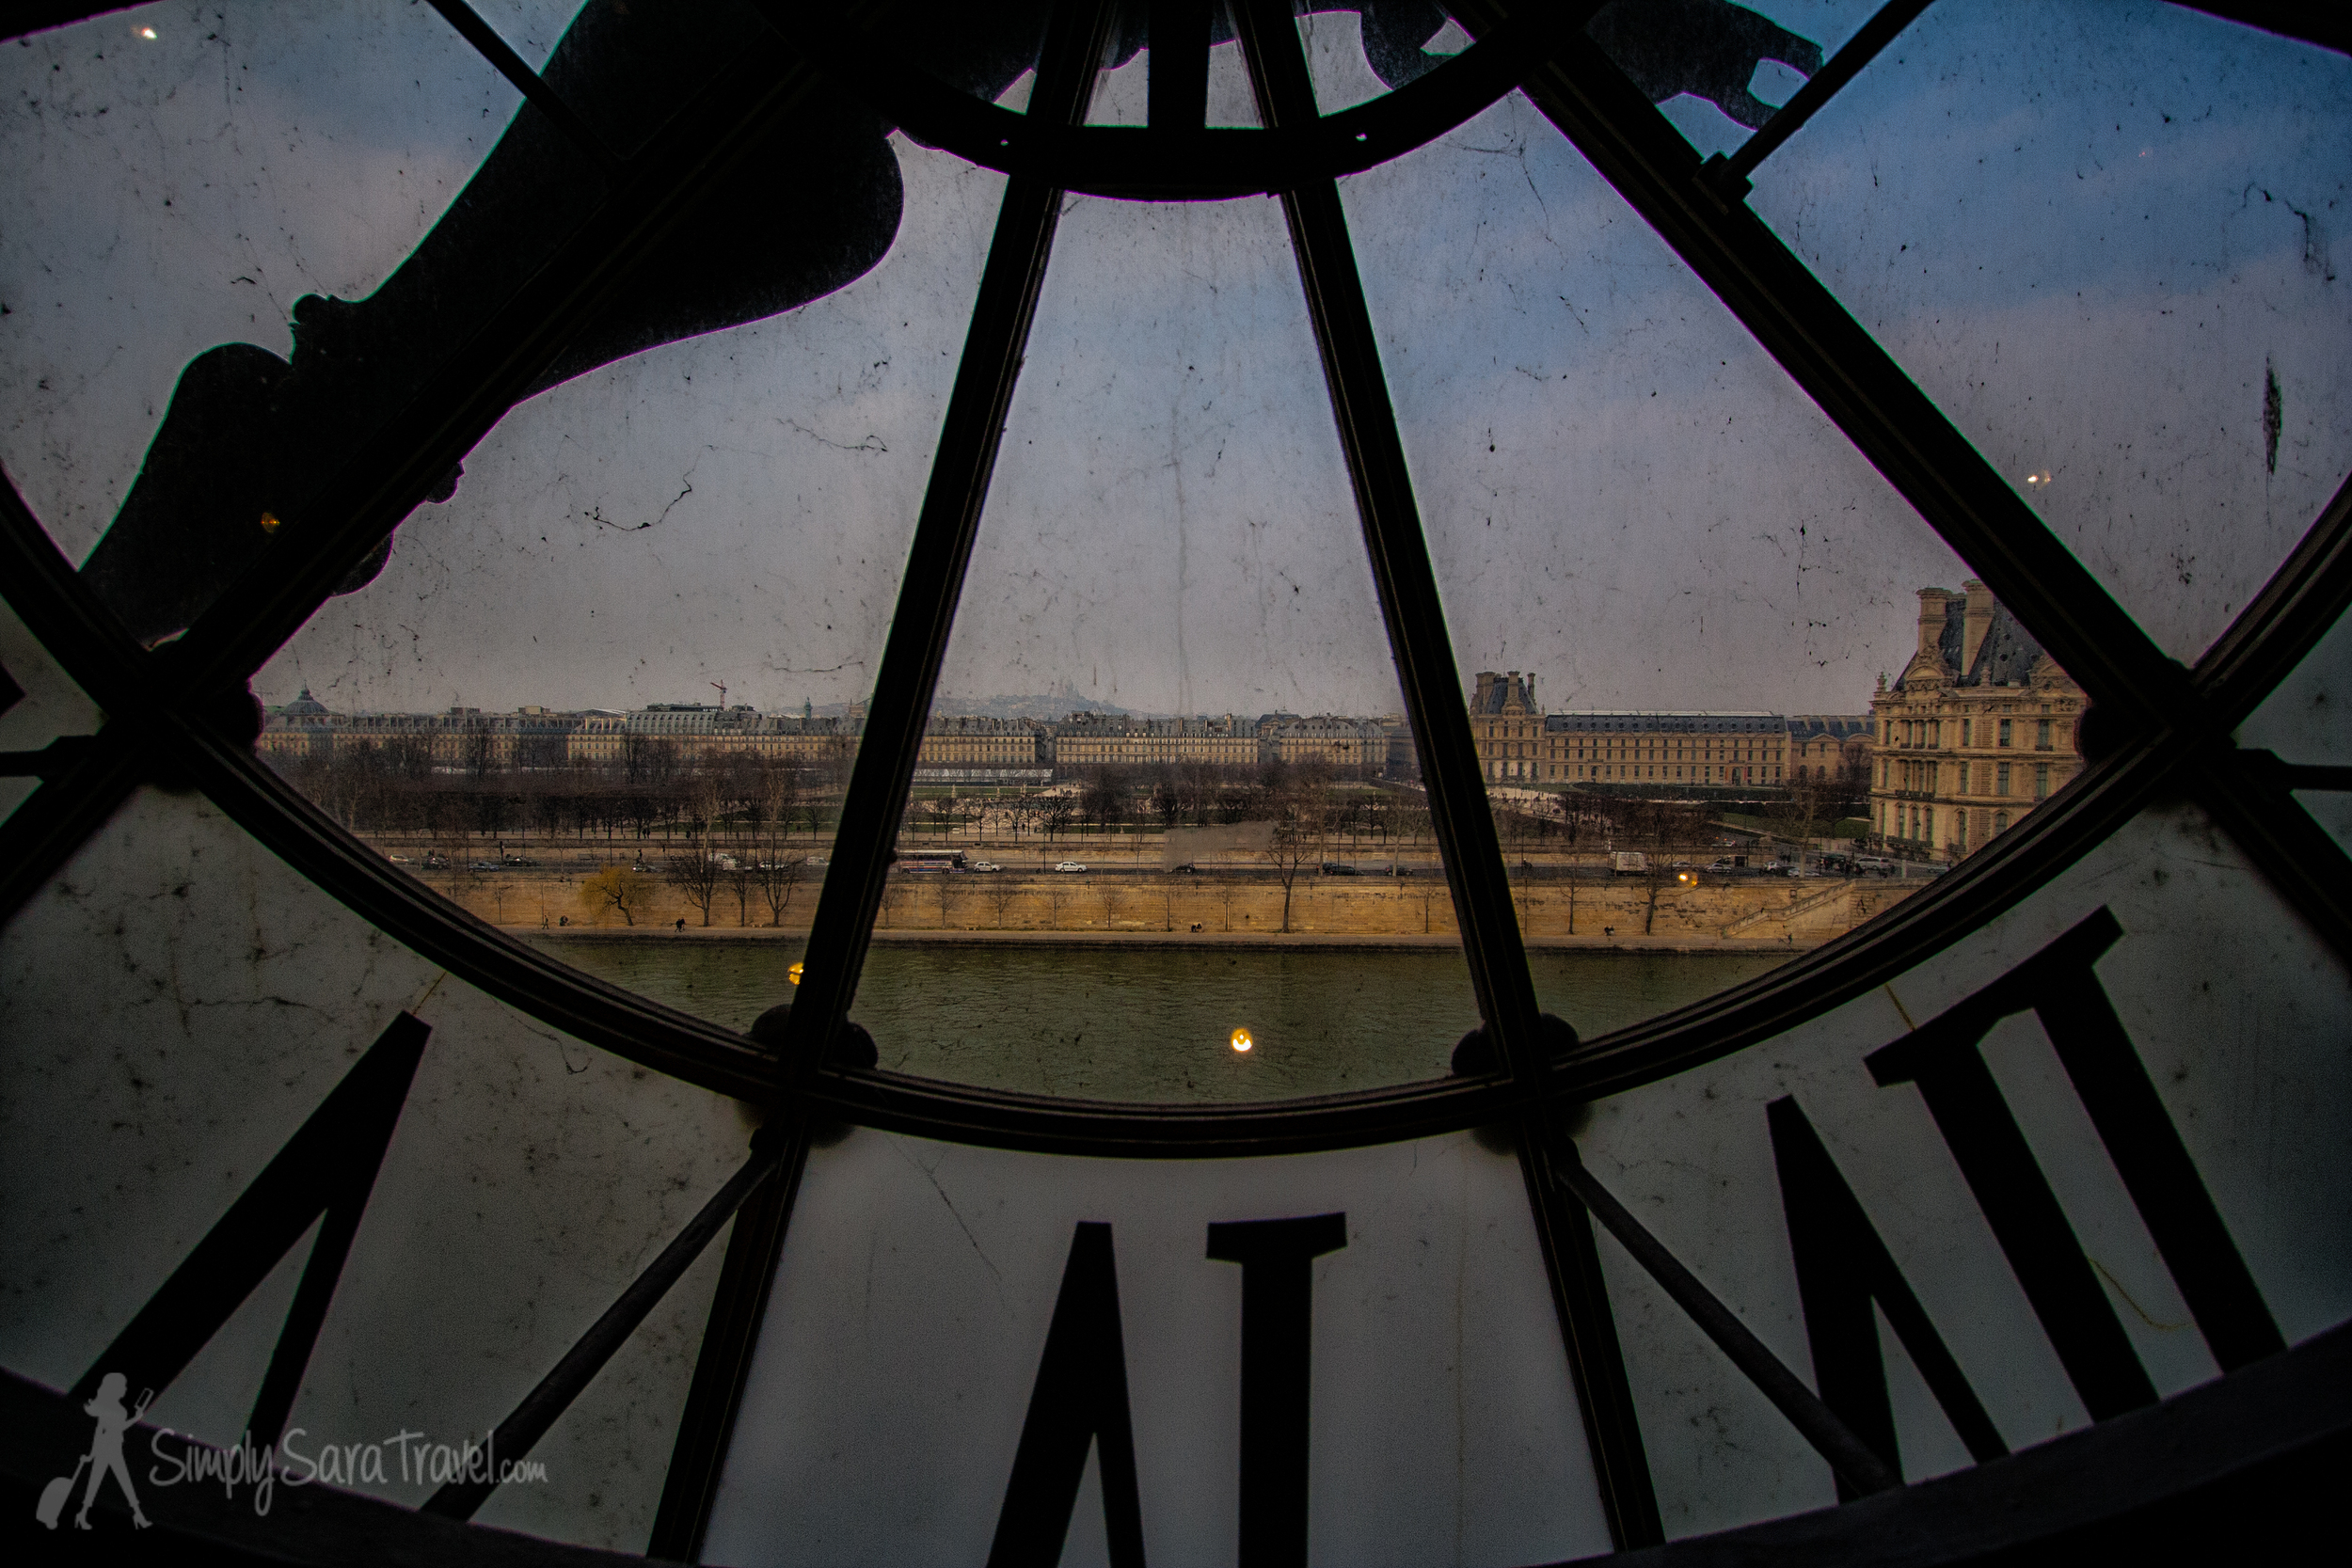 At Musée d'Orsay , looking across the river atMusée du Louvre